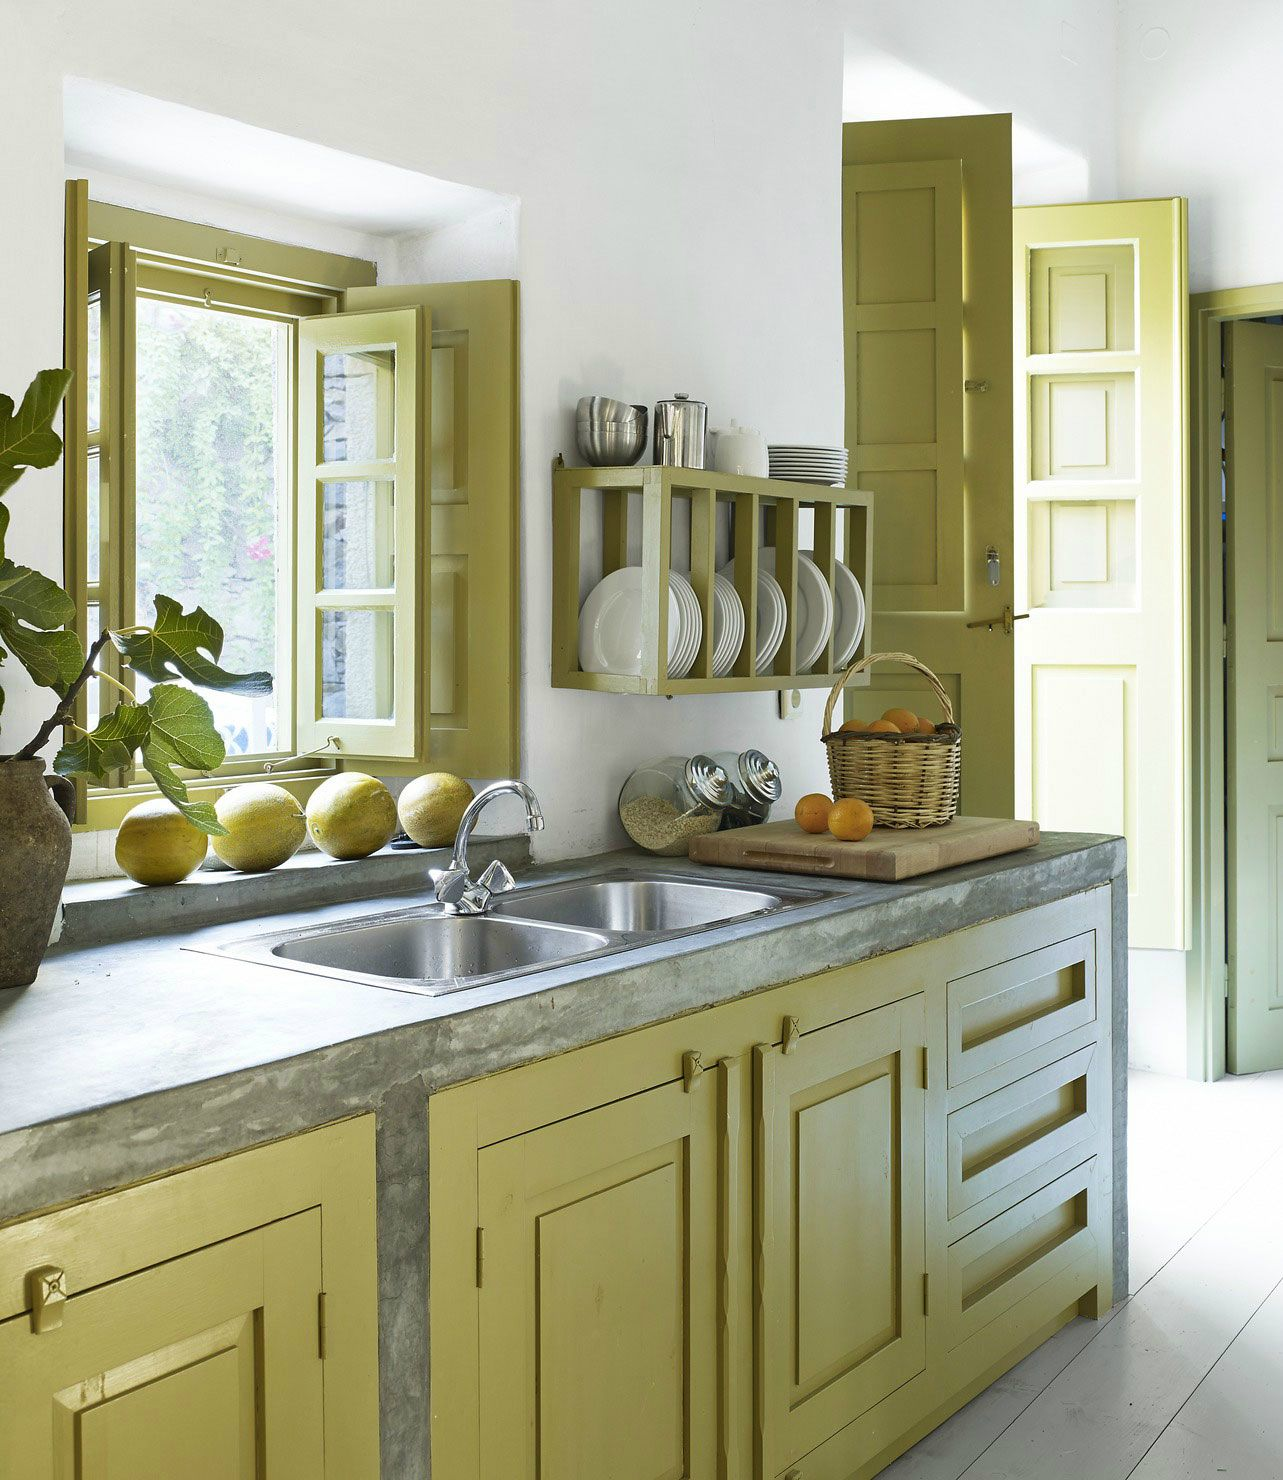 Elle Decor Predicts The Color Trends For 2017  Yellow Kitchen Inspiration Kitchen Interior Design Ideas Decorating Inspiration